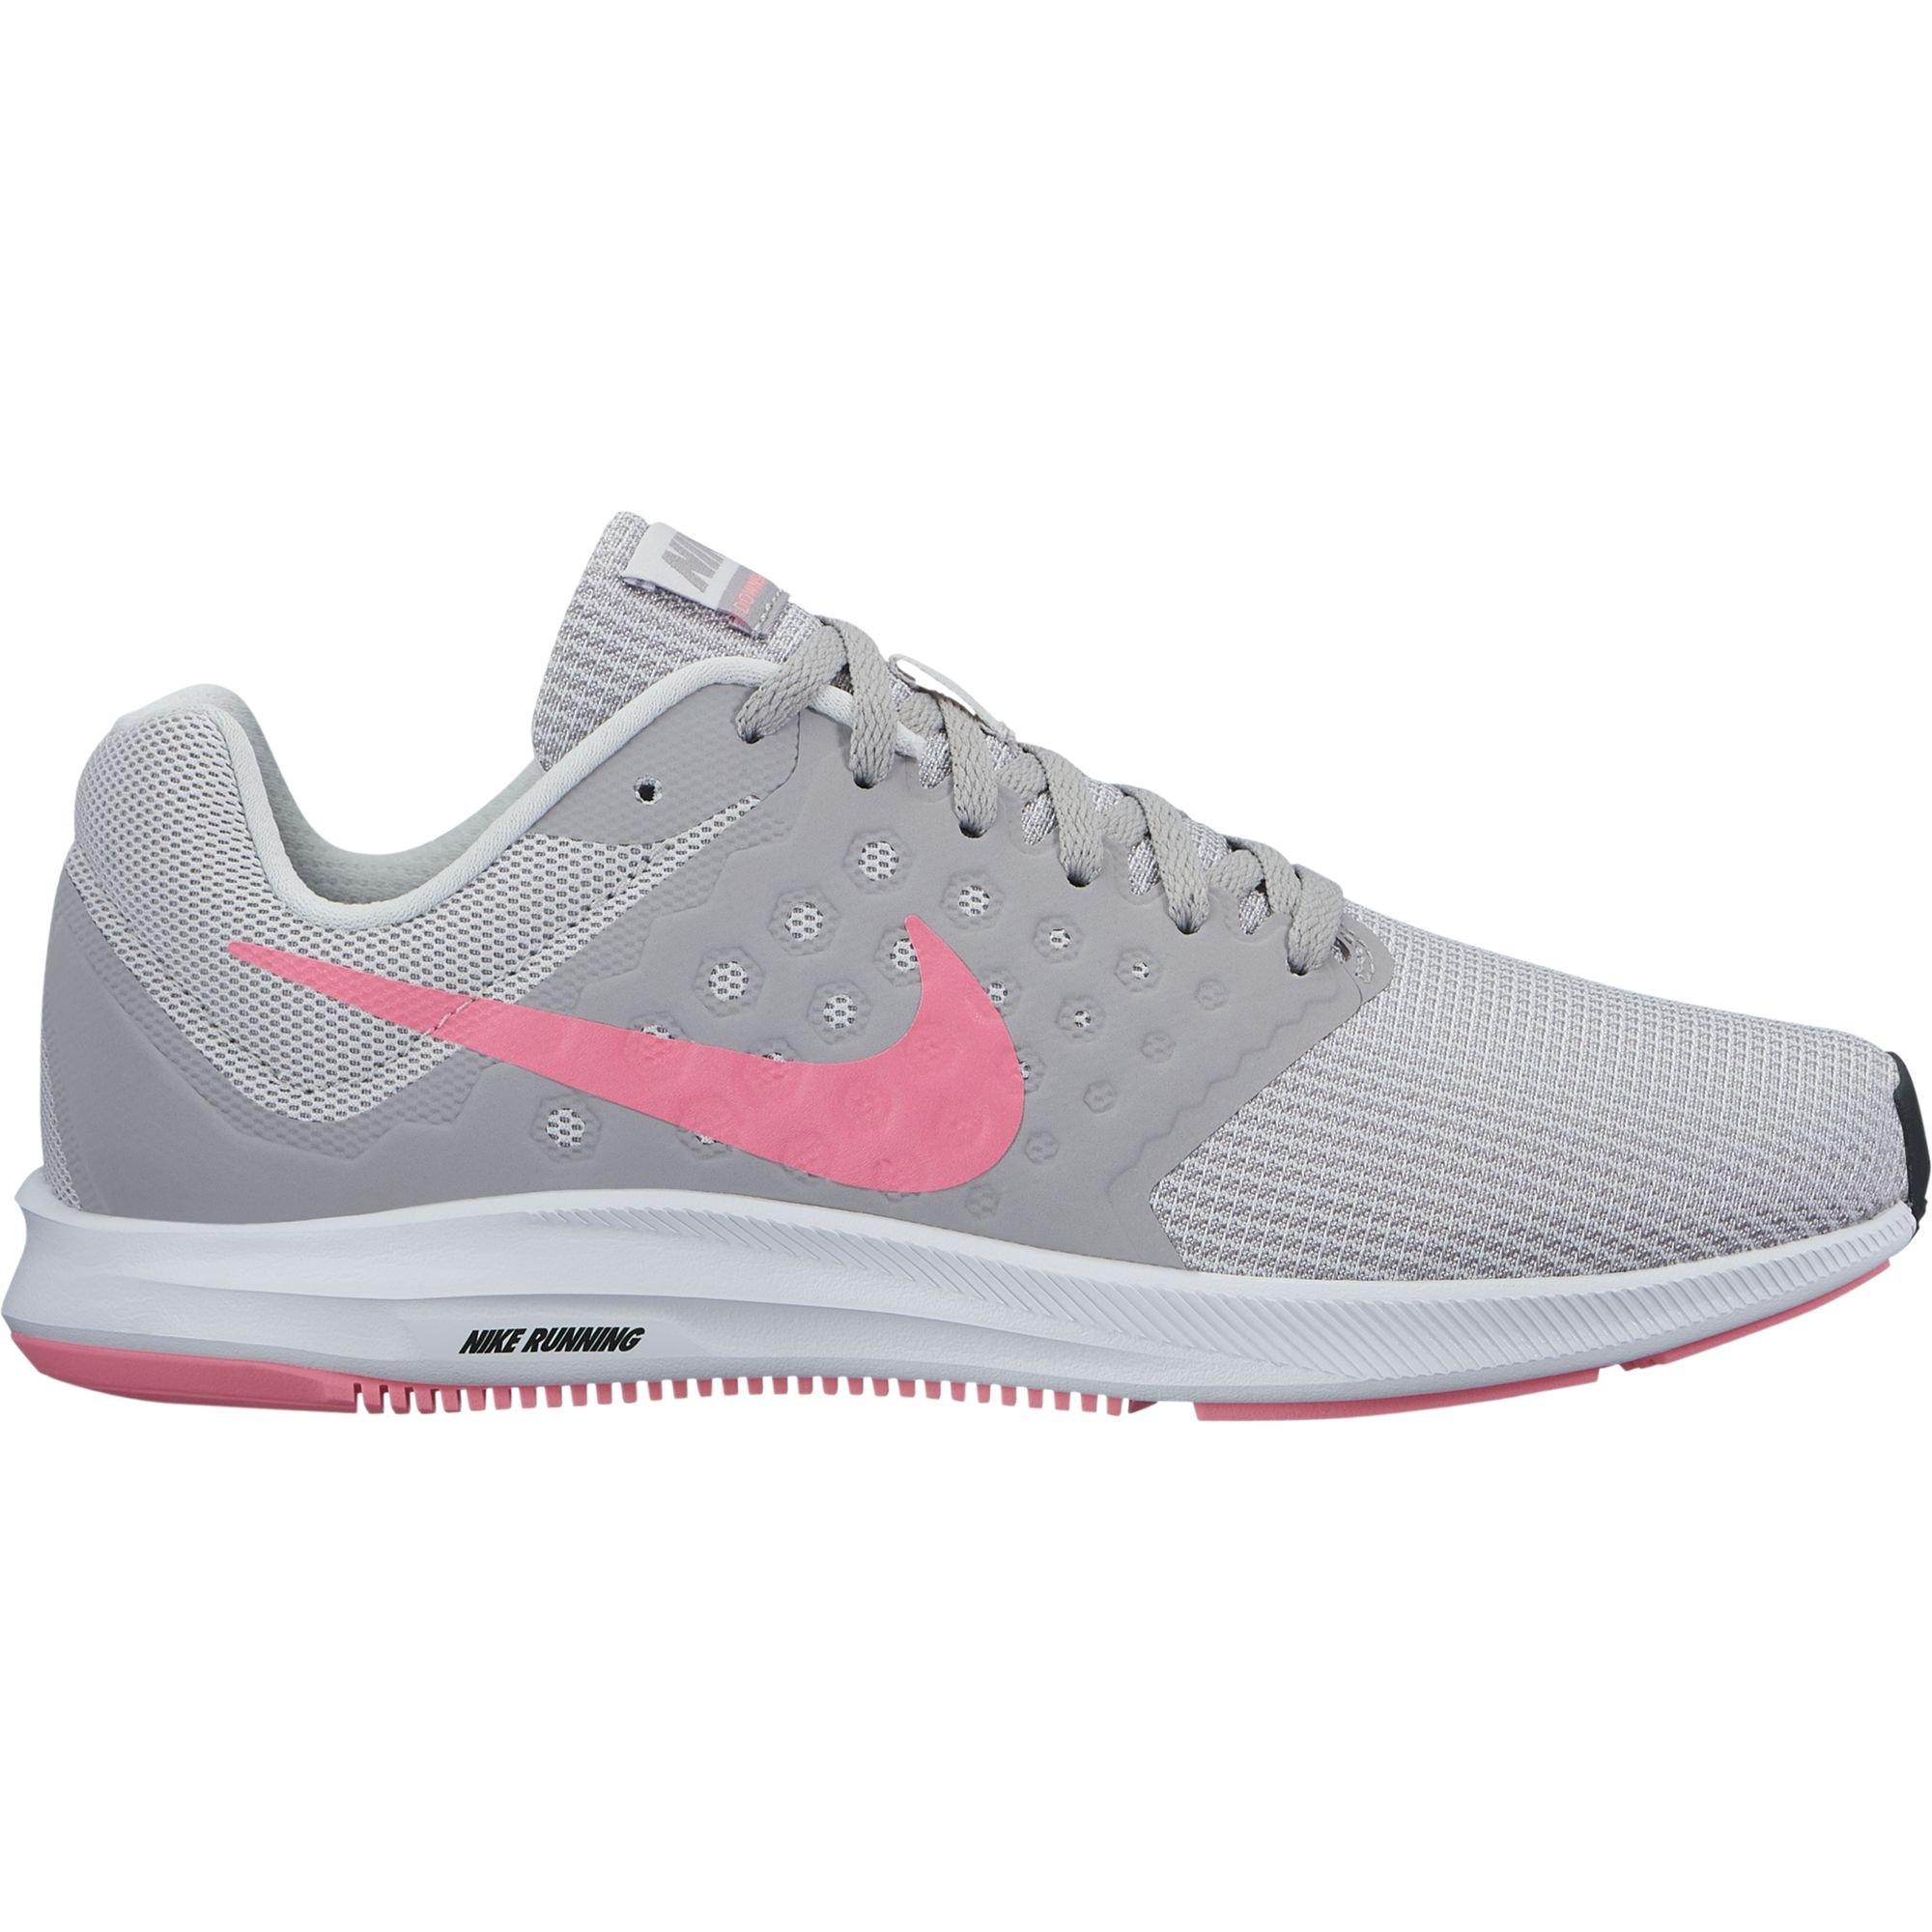 2849f391ce1e Galleon - Nike Women s Downshifter 7 Running Shoe Vast Grey Sunset  Pulse Atmosphere Grey Size 7.5 M US